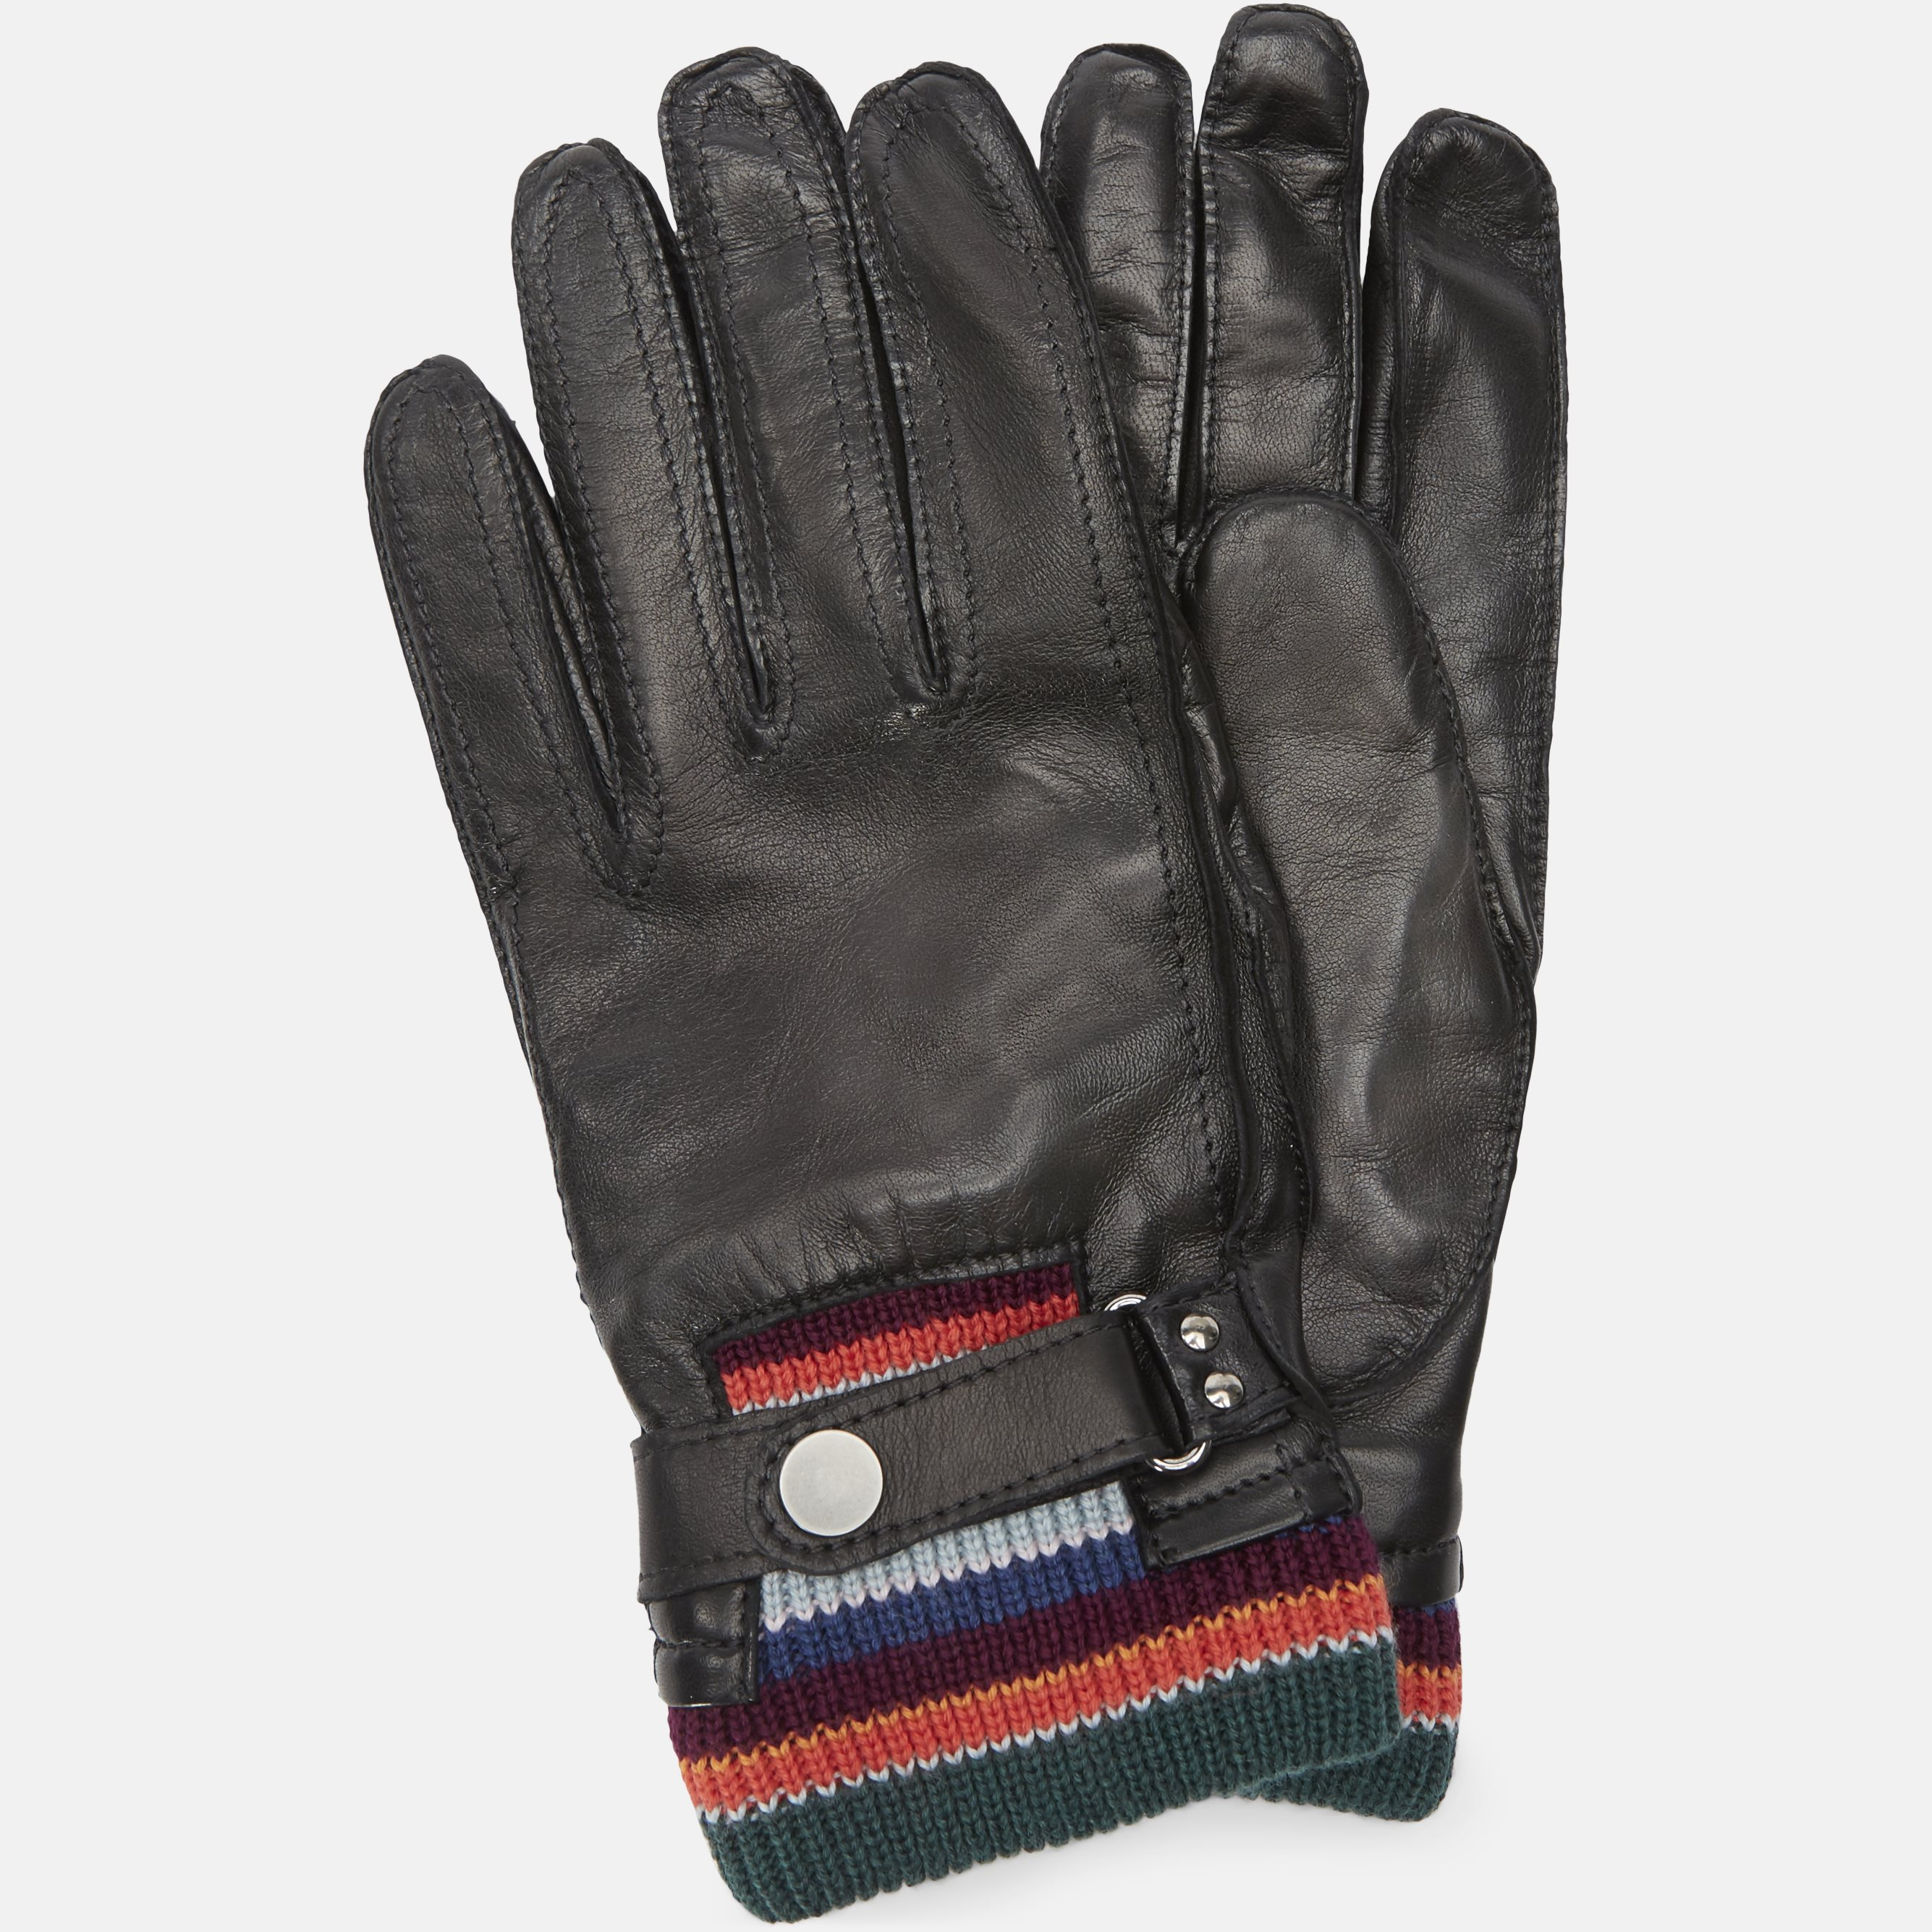 Gloves - Black